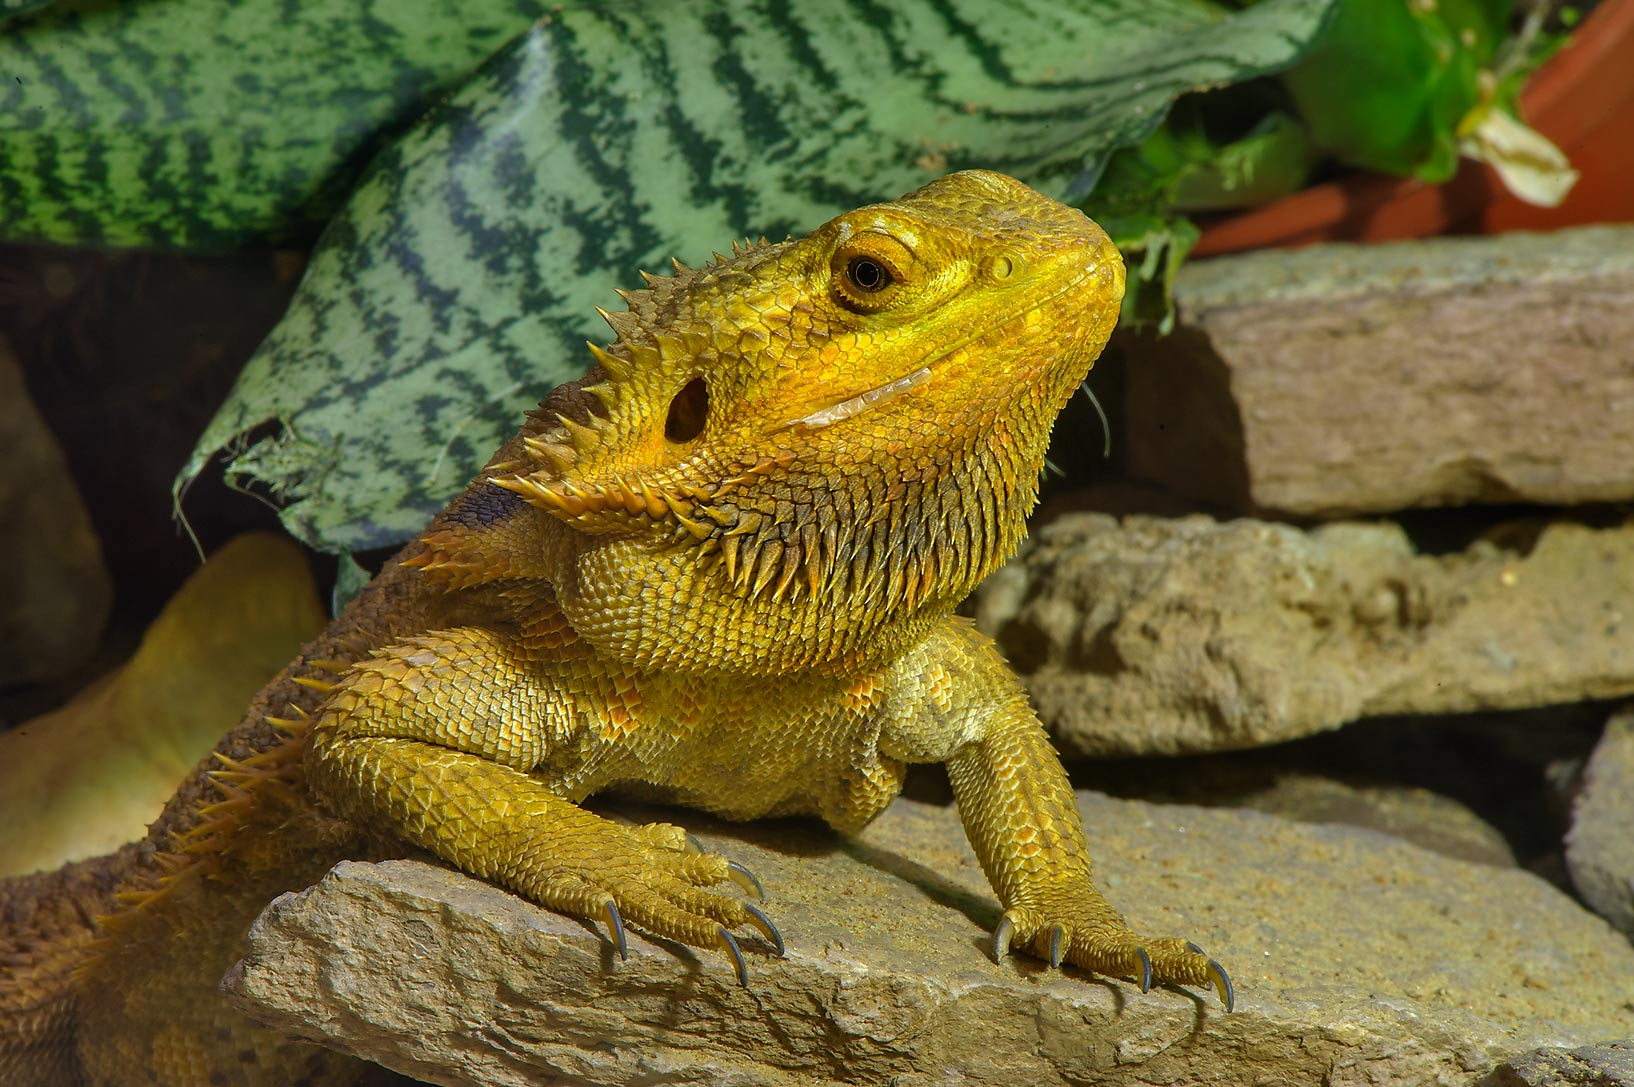 Yellow iguana in Leningrad Zoo. St.Petersburg, Russia